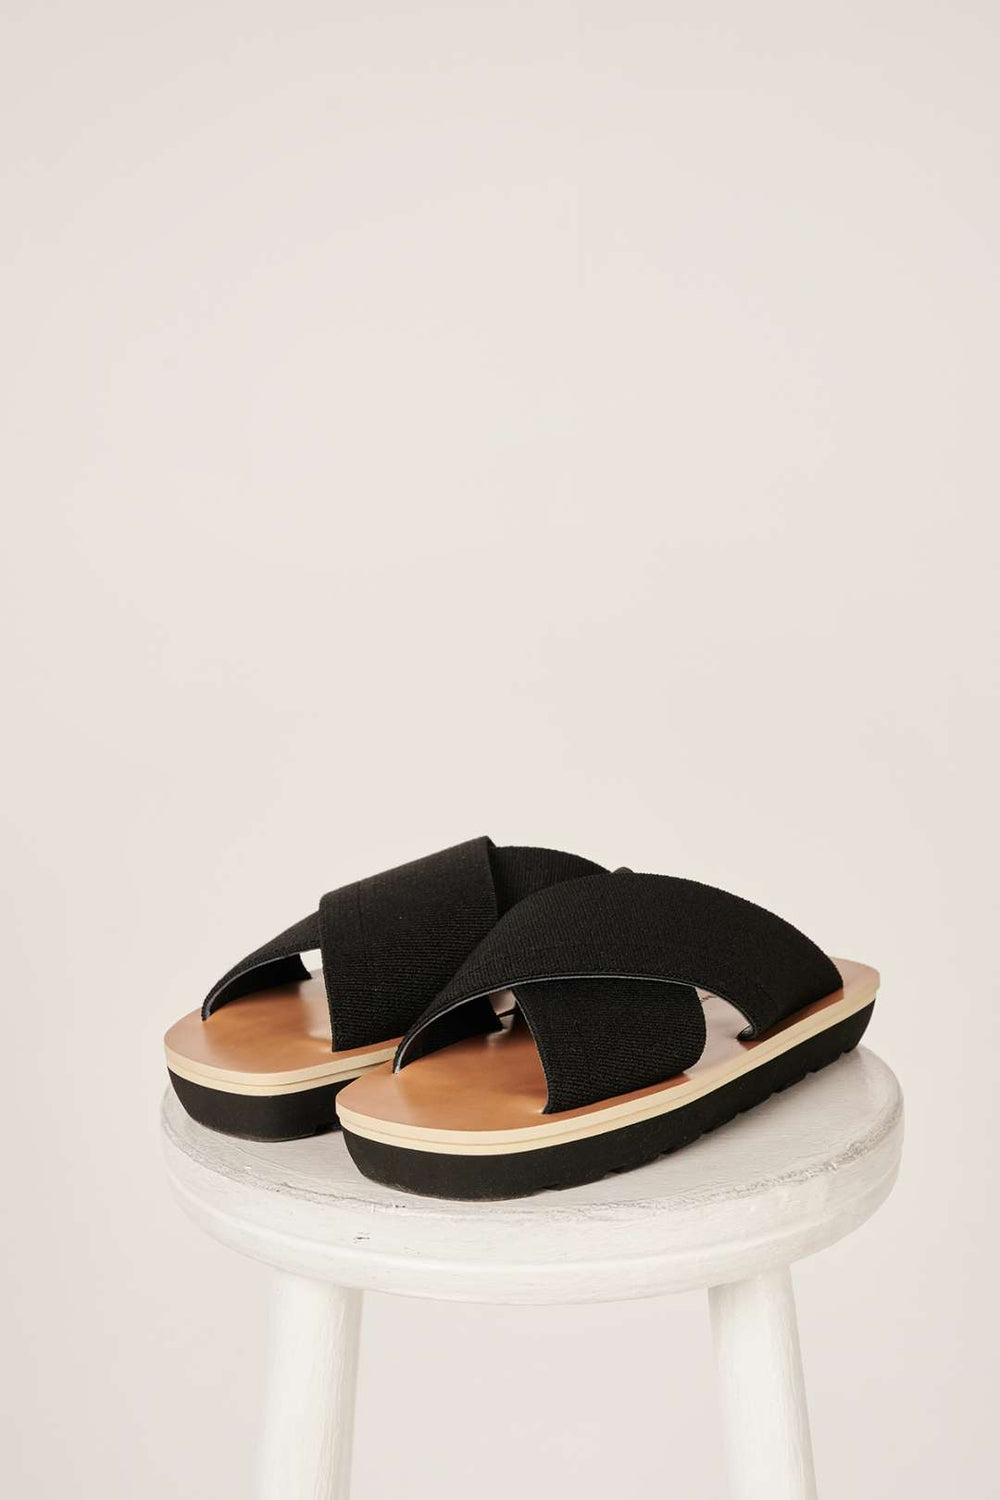 Crossover strap sandals-Black - Studio Avra